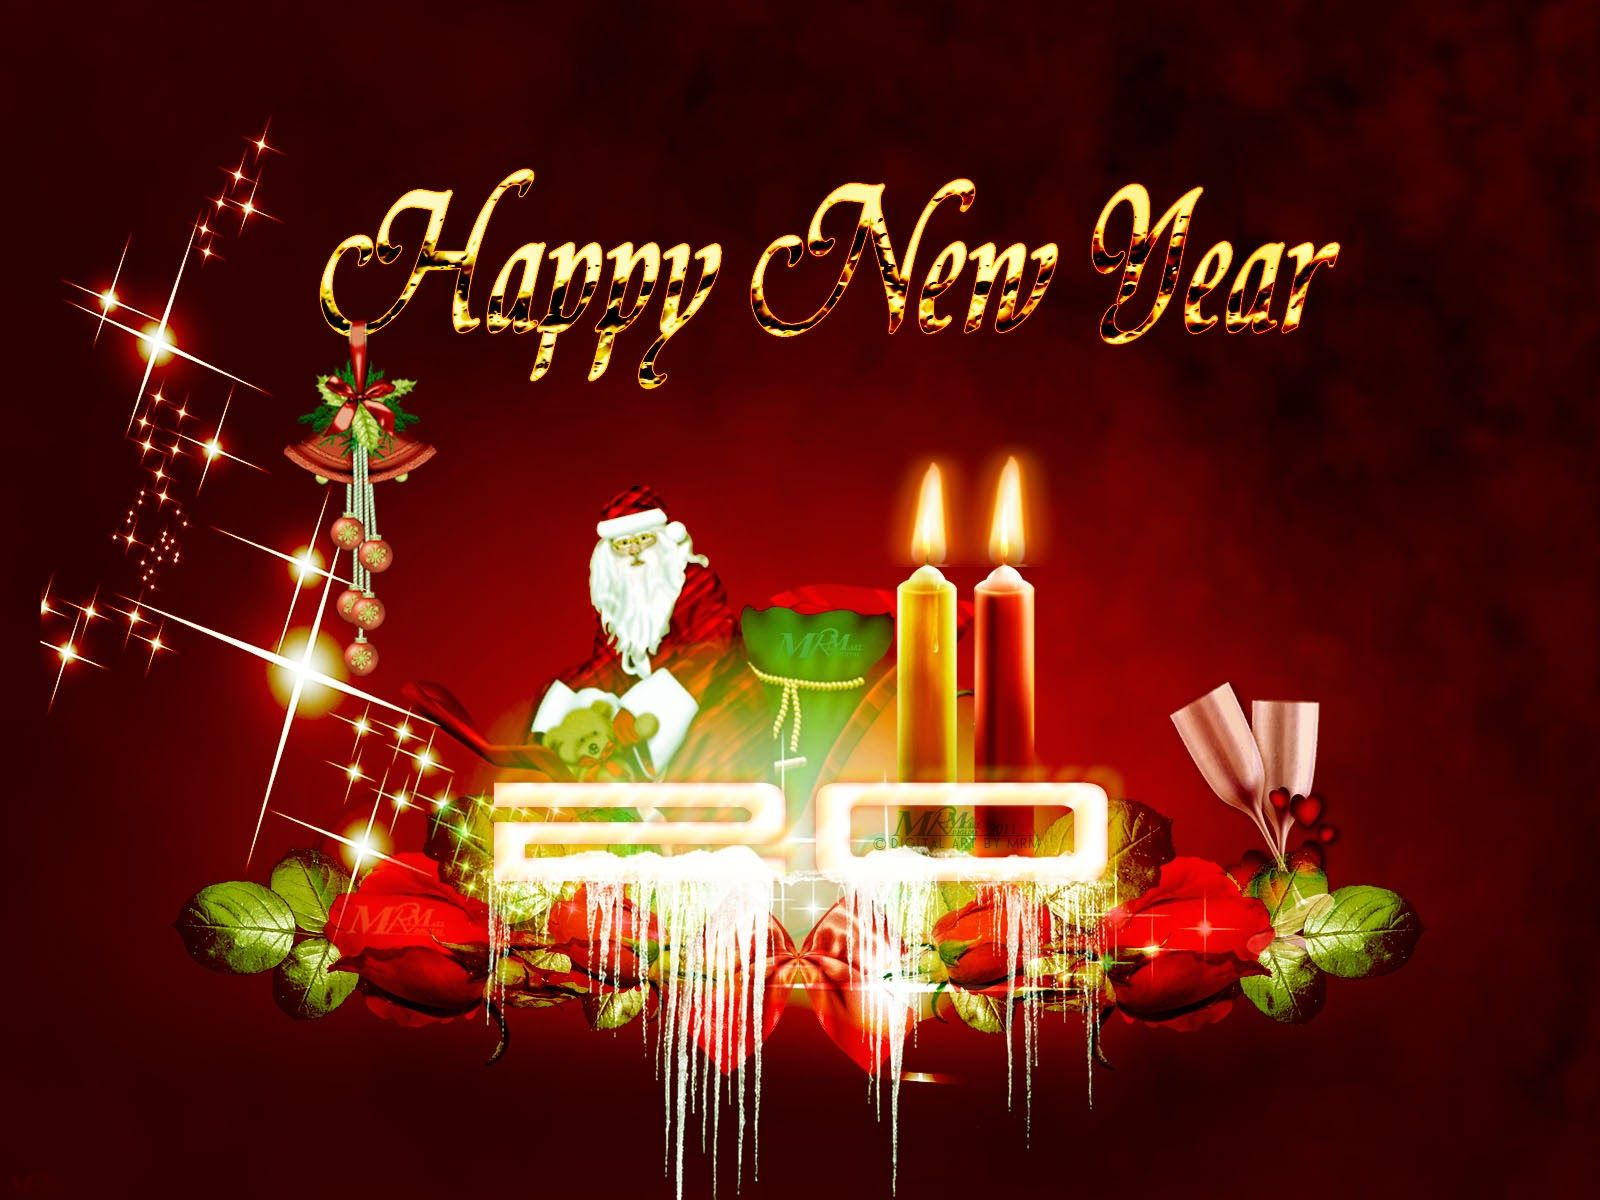 All Wishes Message Wishes Card Greeting Card Top 10 New Year